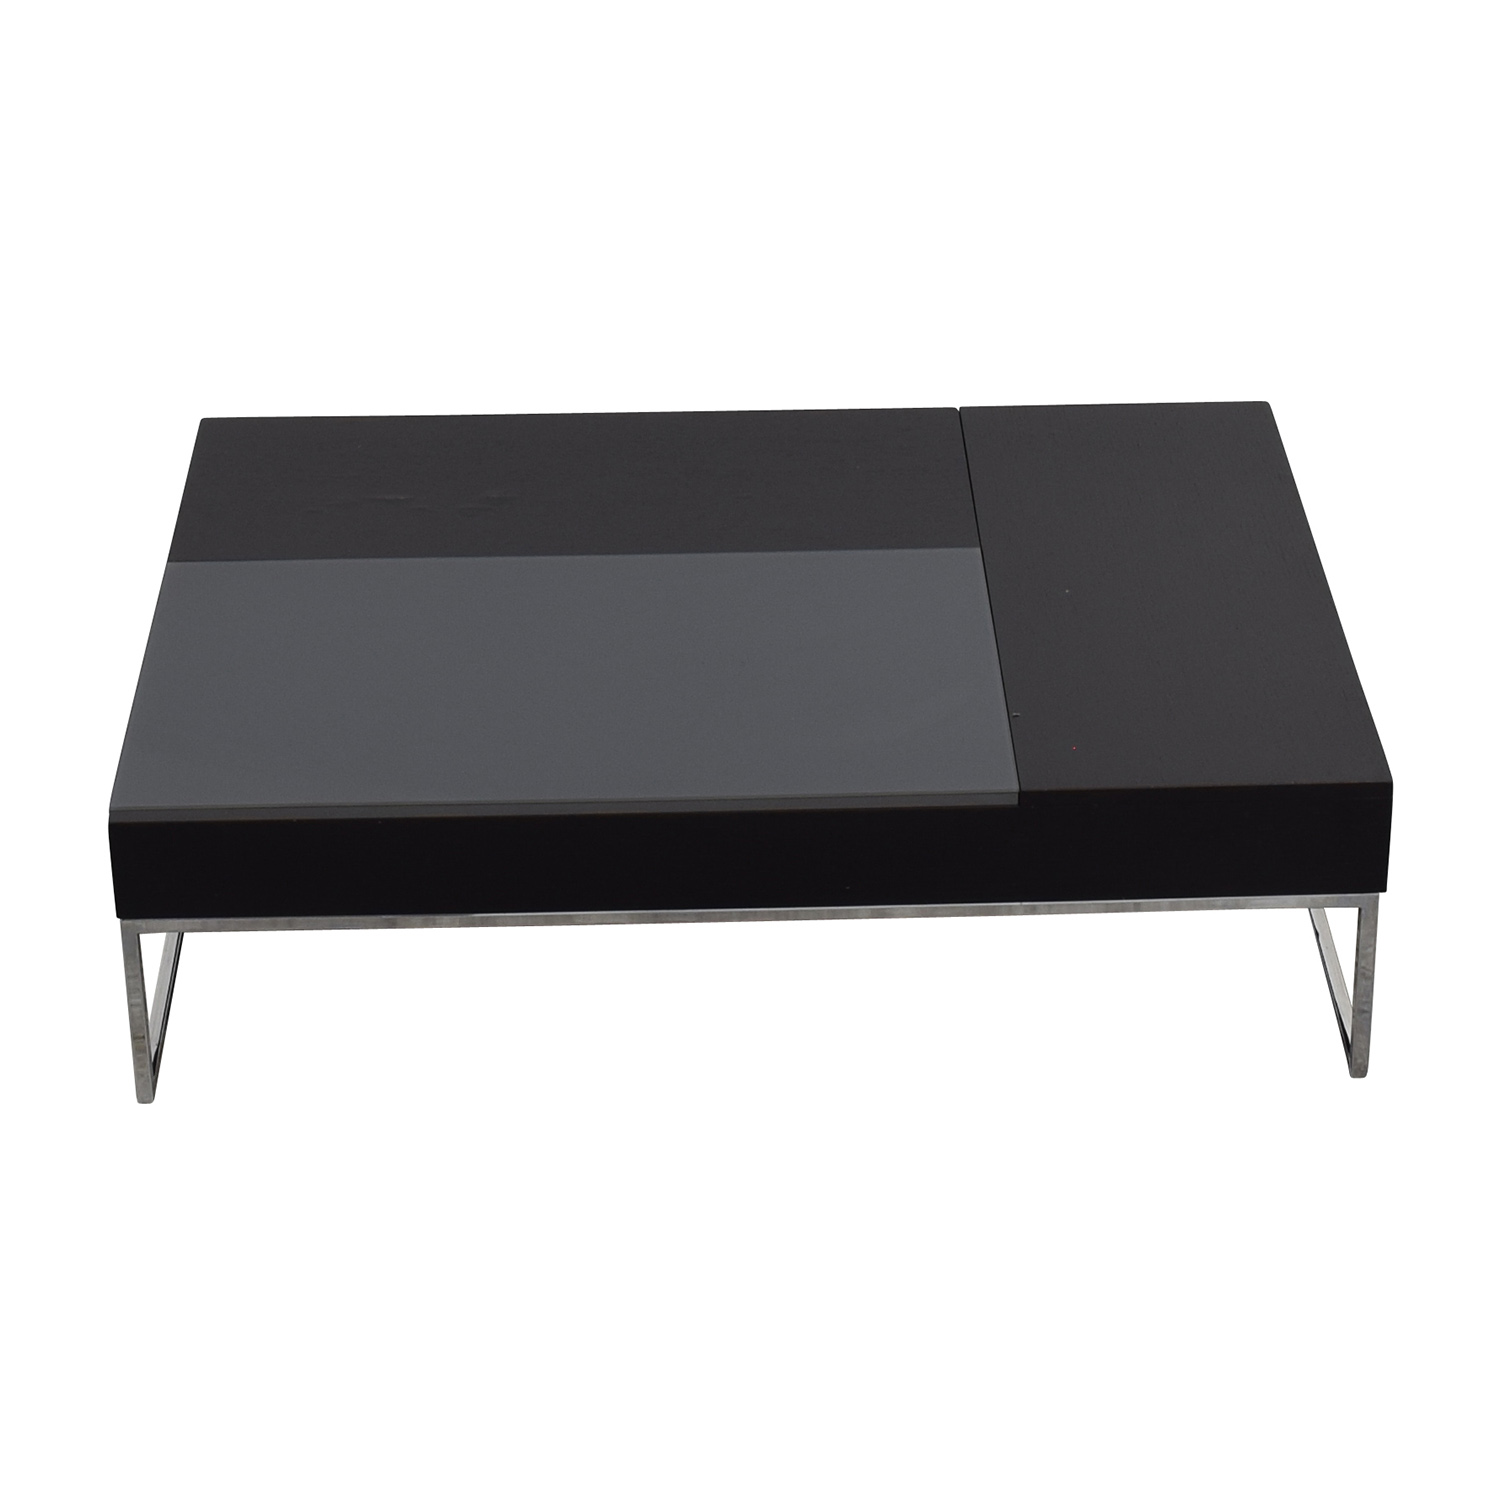 ... buy BoConcept Chiva Storage Coffee Table BoConcept Coffee Tables ...